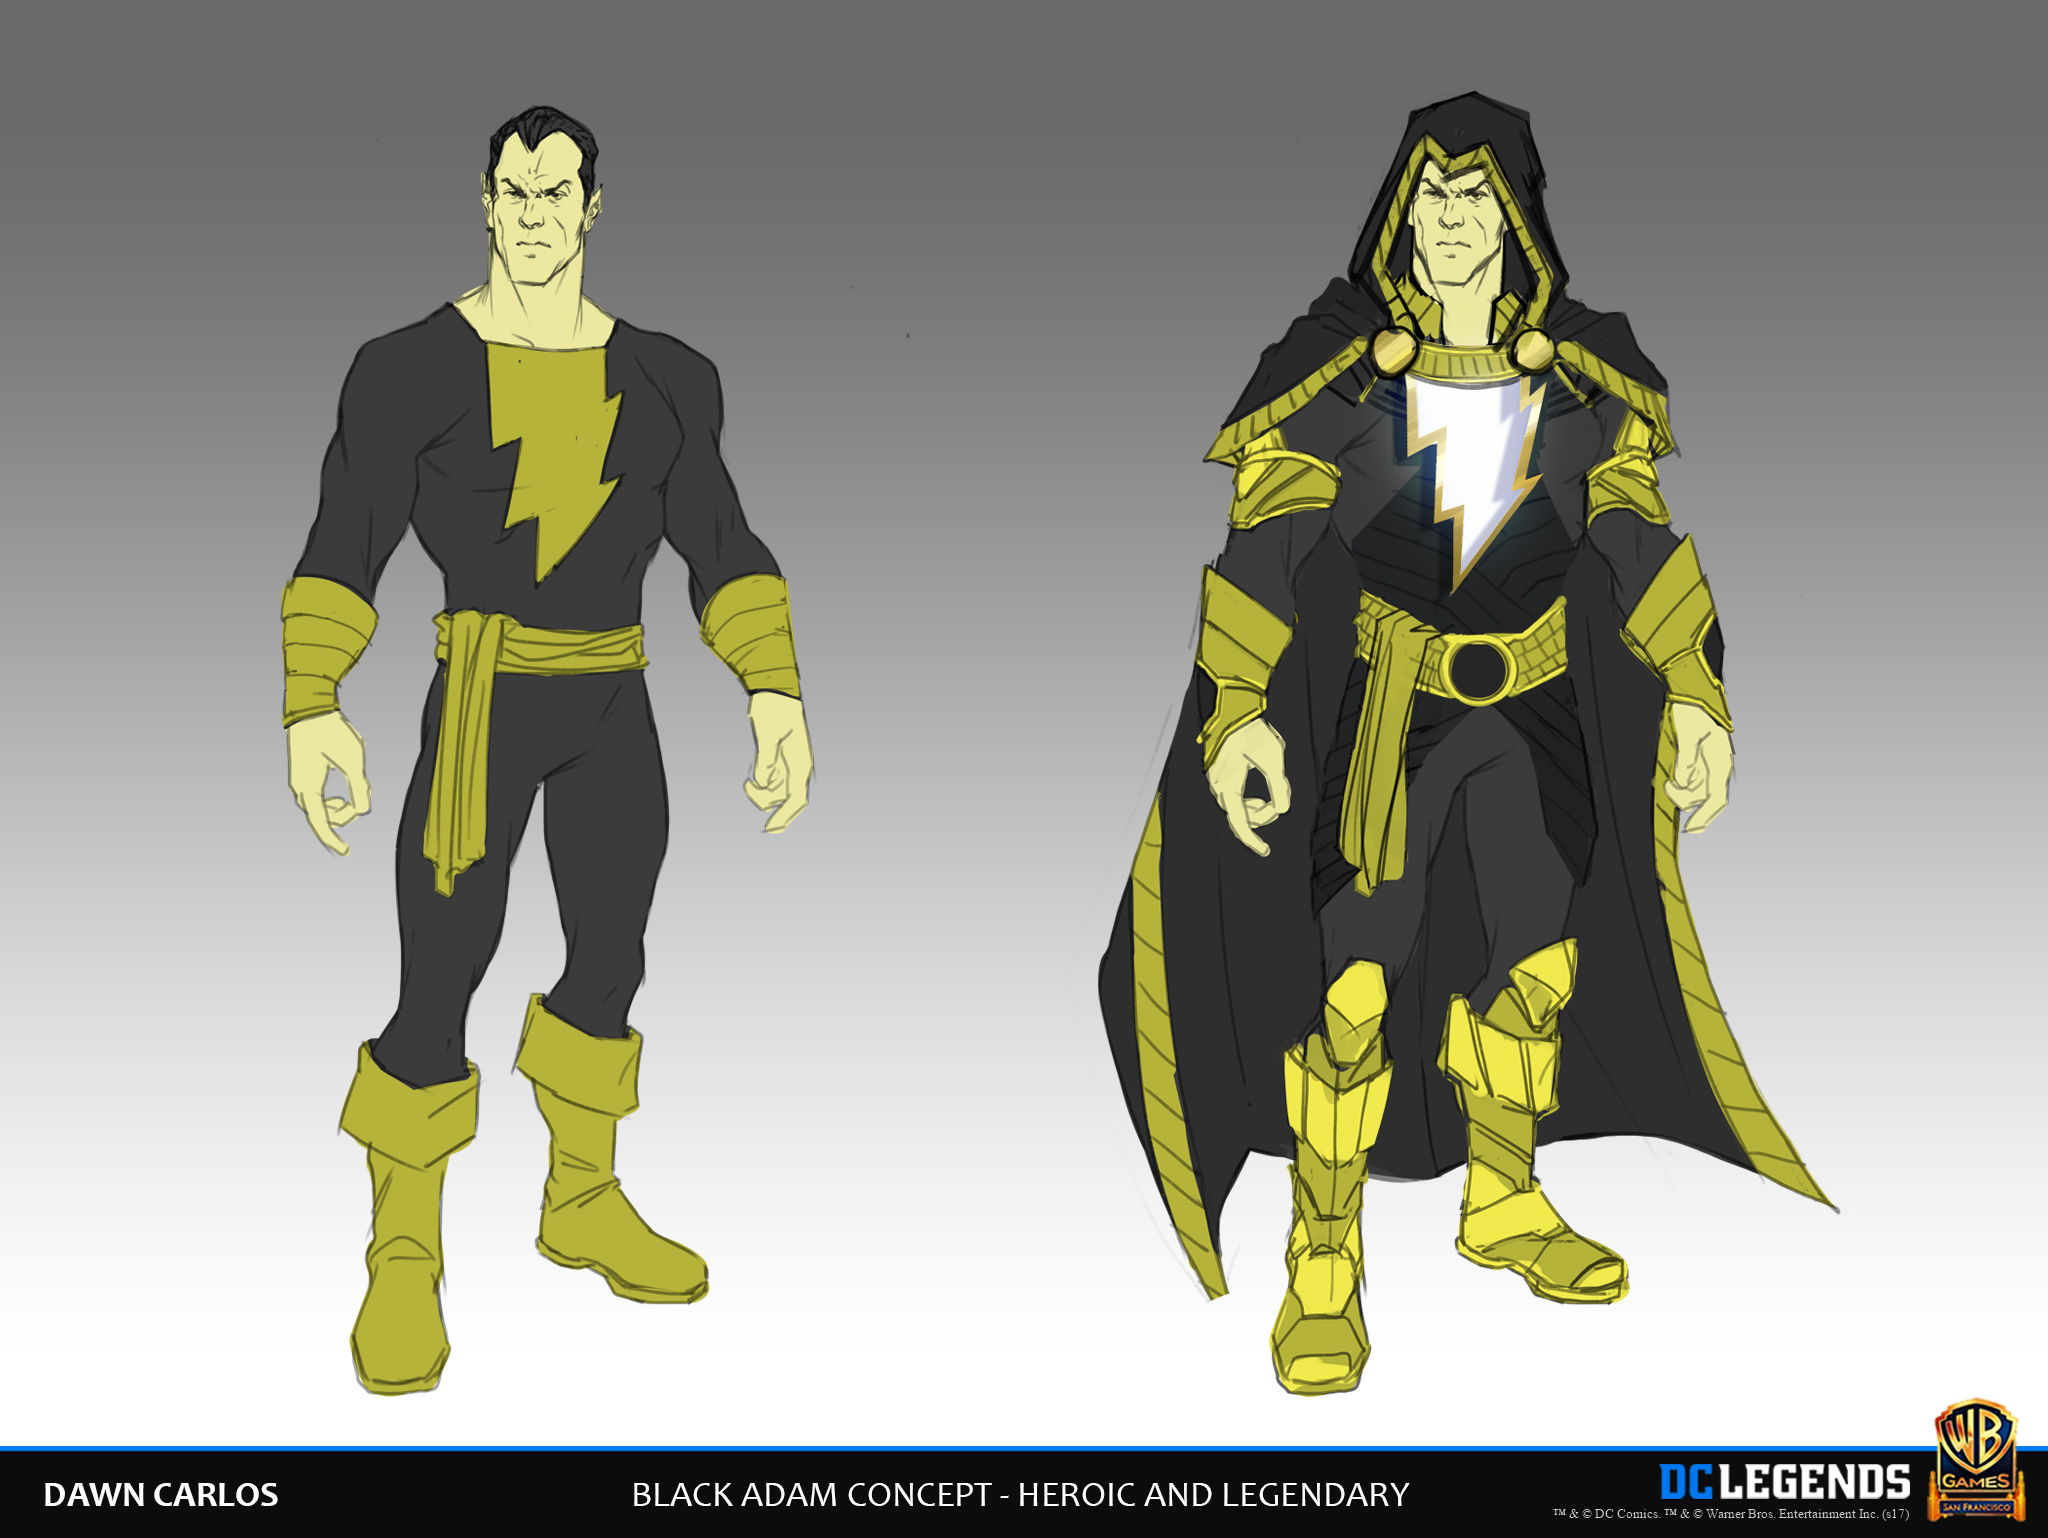 dcLegends_DawnCarlos_submissions_characterConcept_BLACKADAM.jpg